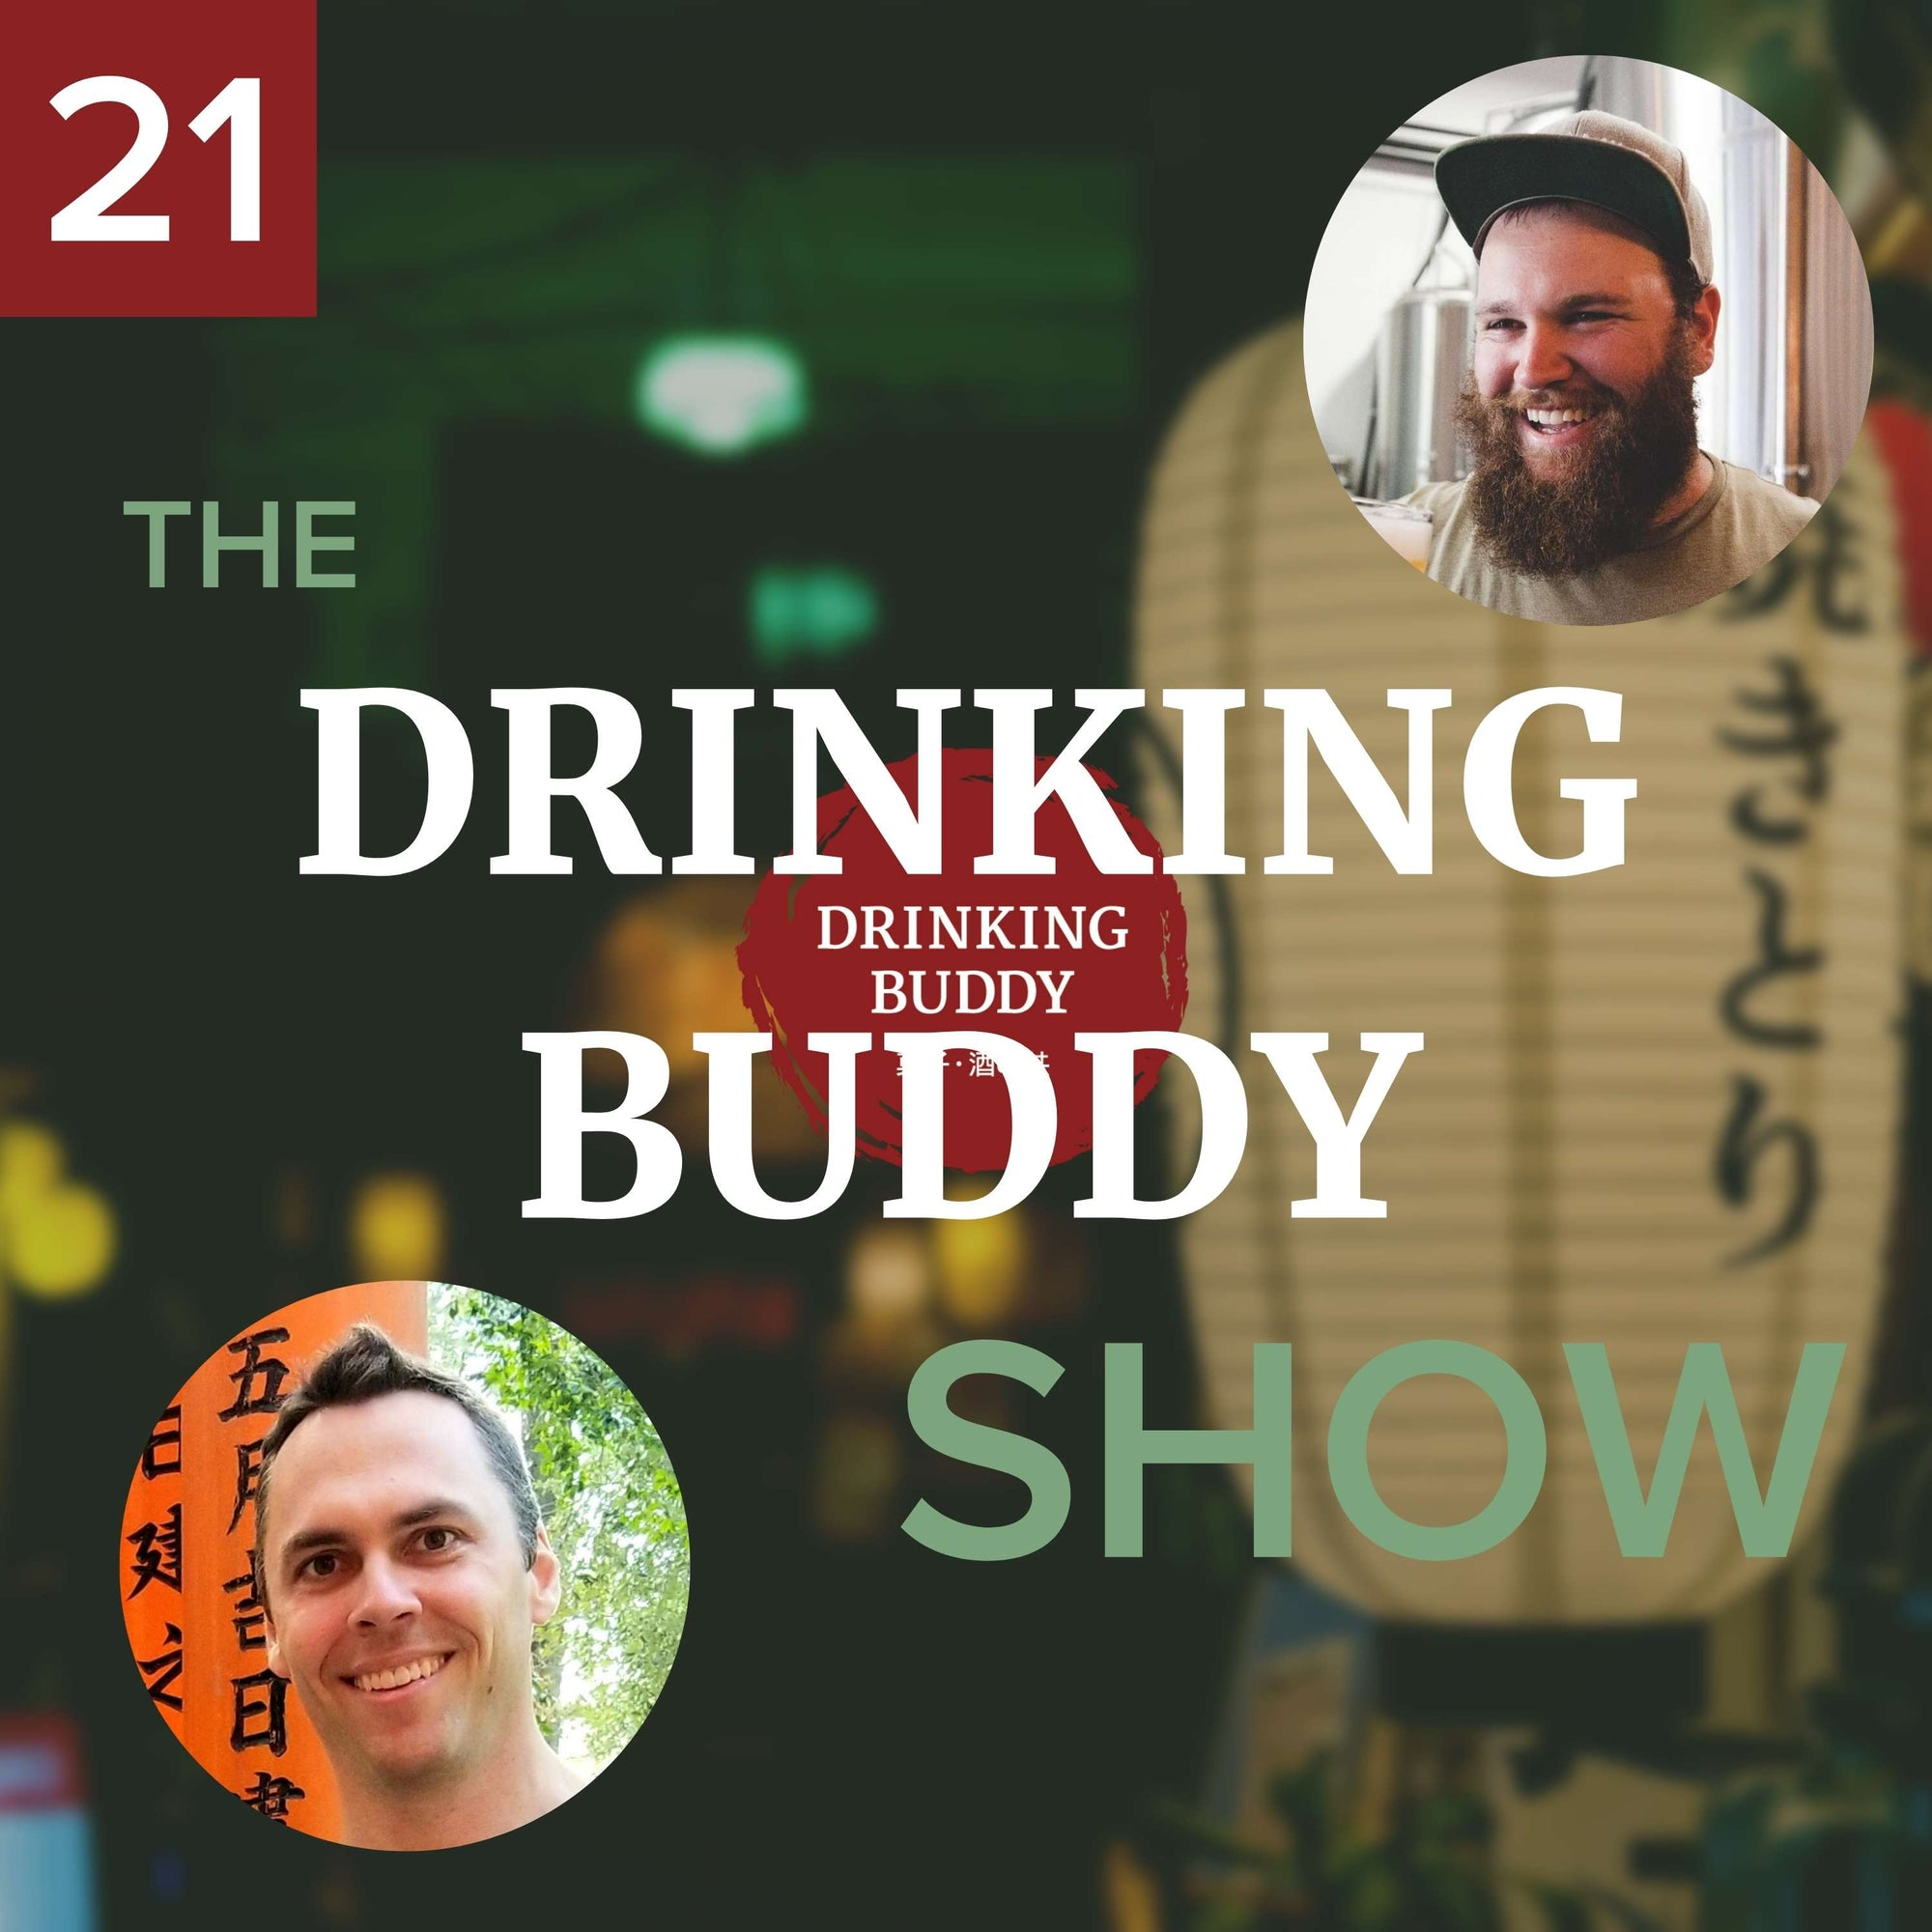 Jesse Sundstrom head brewer of Ten Mile Brewing in Signal Hill CA on the Drinking Buddy Show podcast